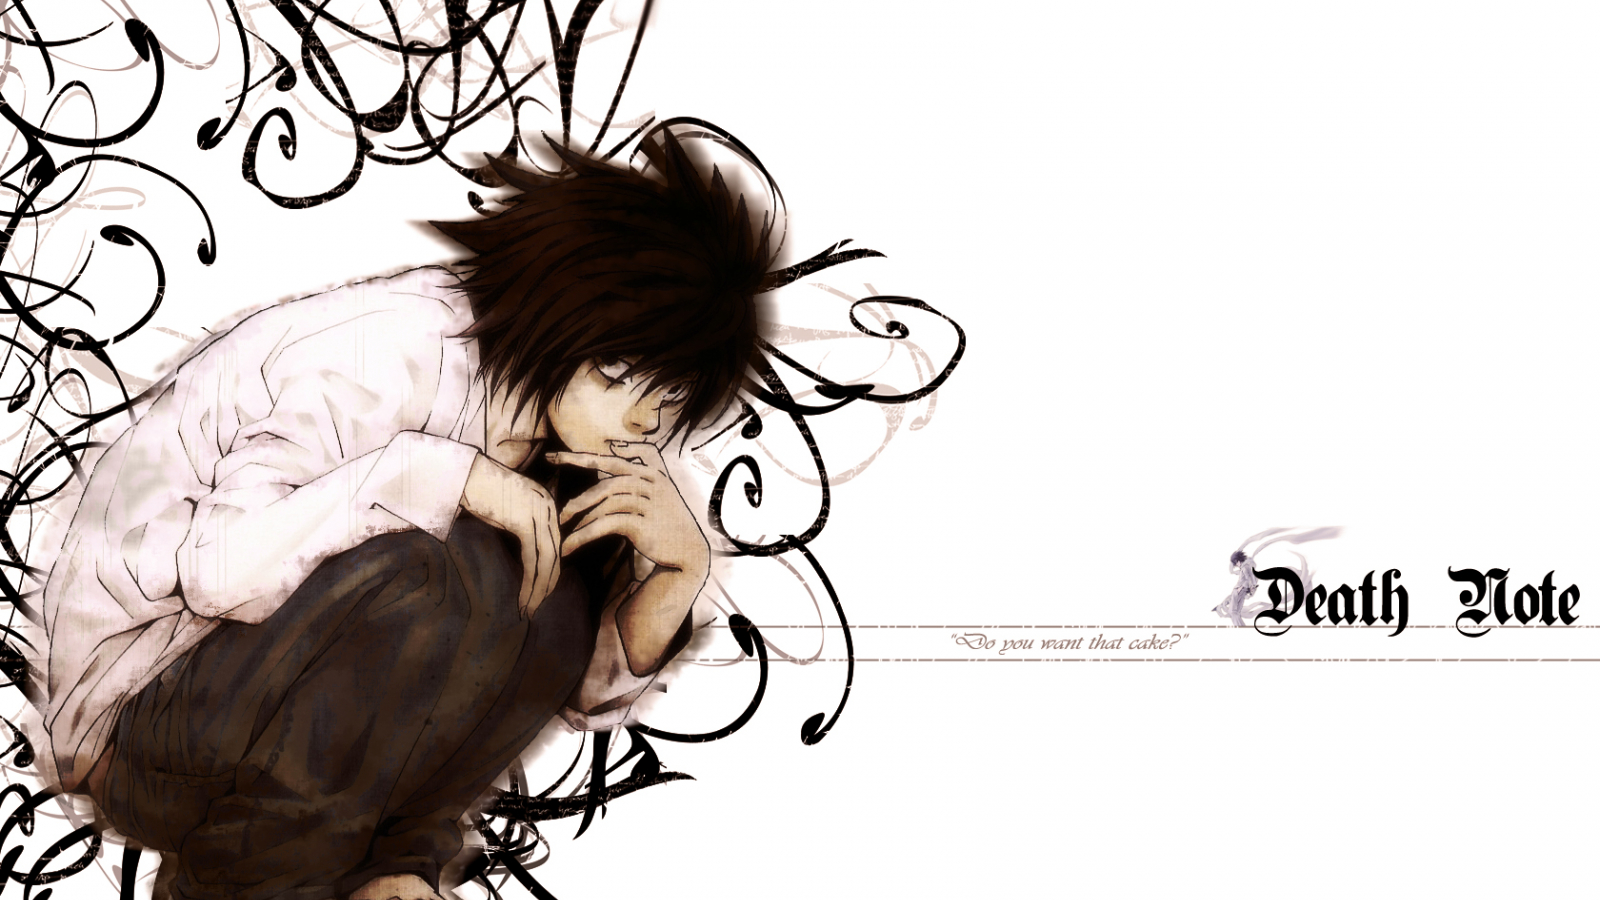 free download death note l wallpaper by orijuice fan art wallpaper movies tv a 1680x1050 for your desktop mobile tablet explore 77 l death note wallpaper death note wallpaper free download death note l wallpaper by